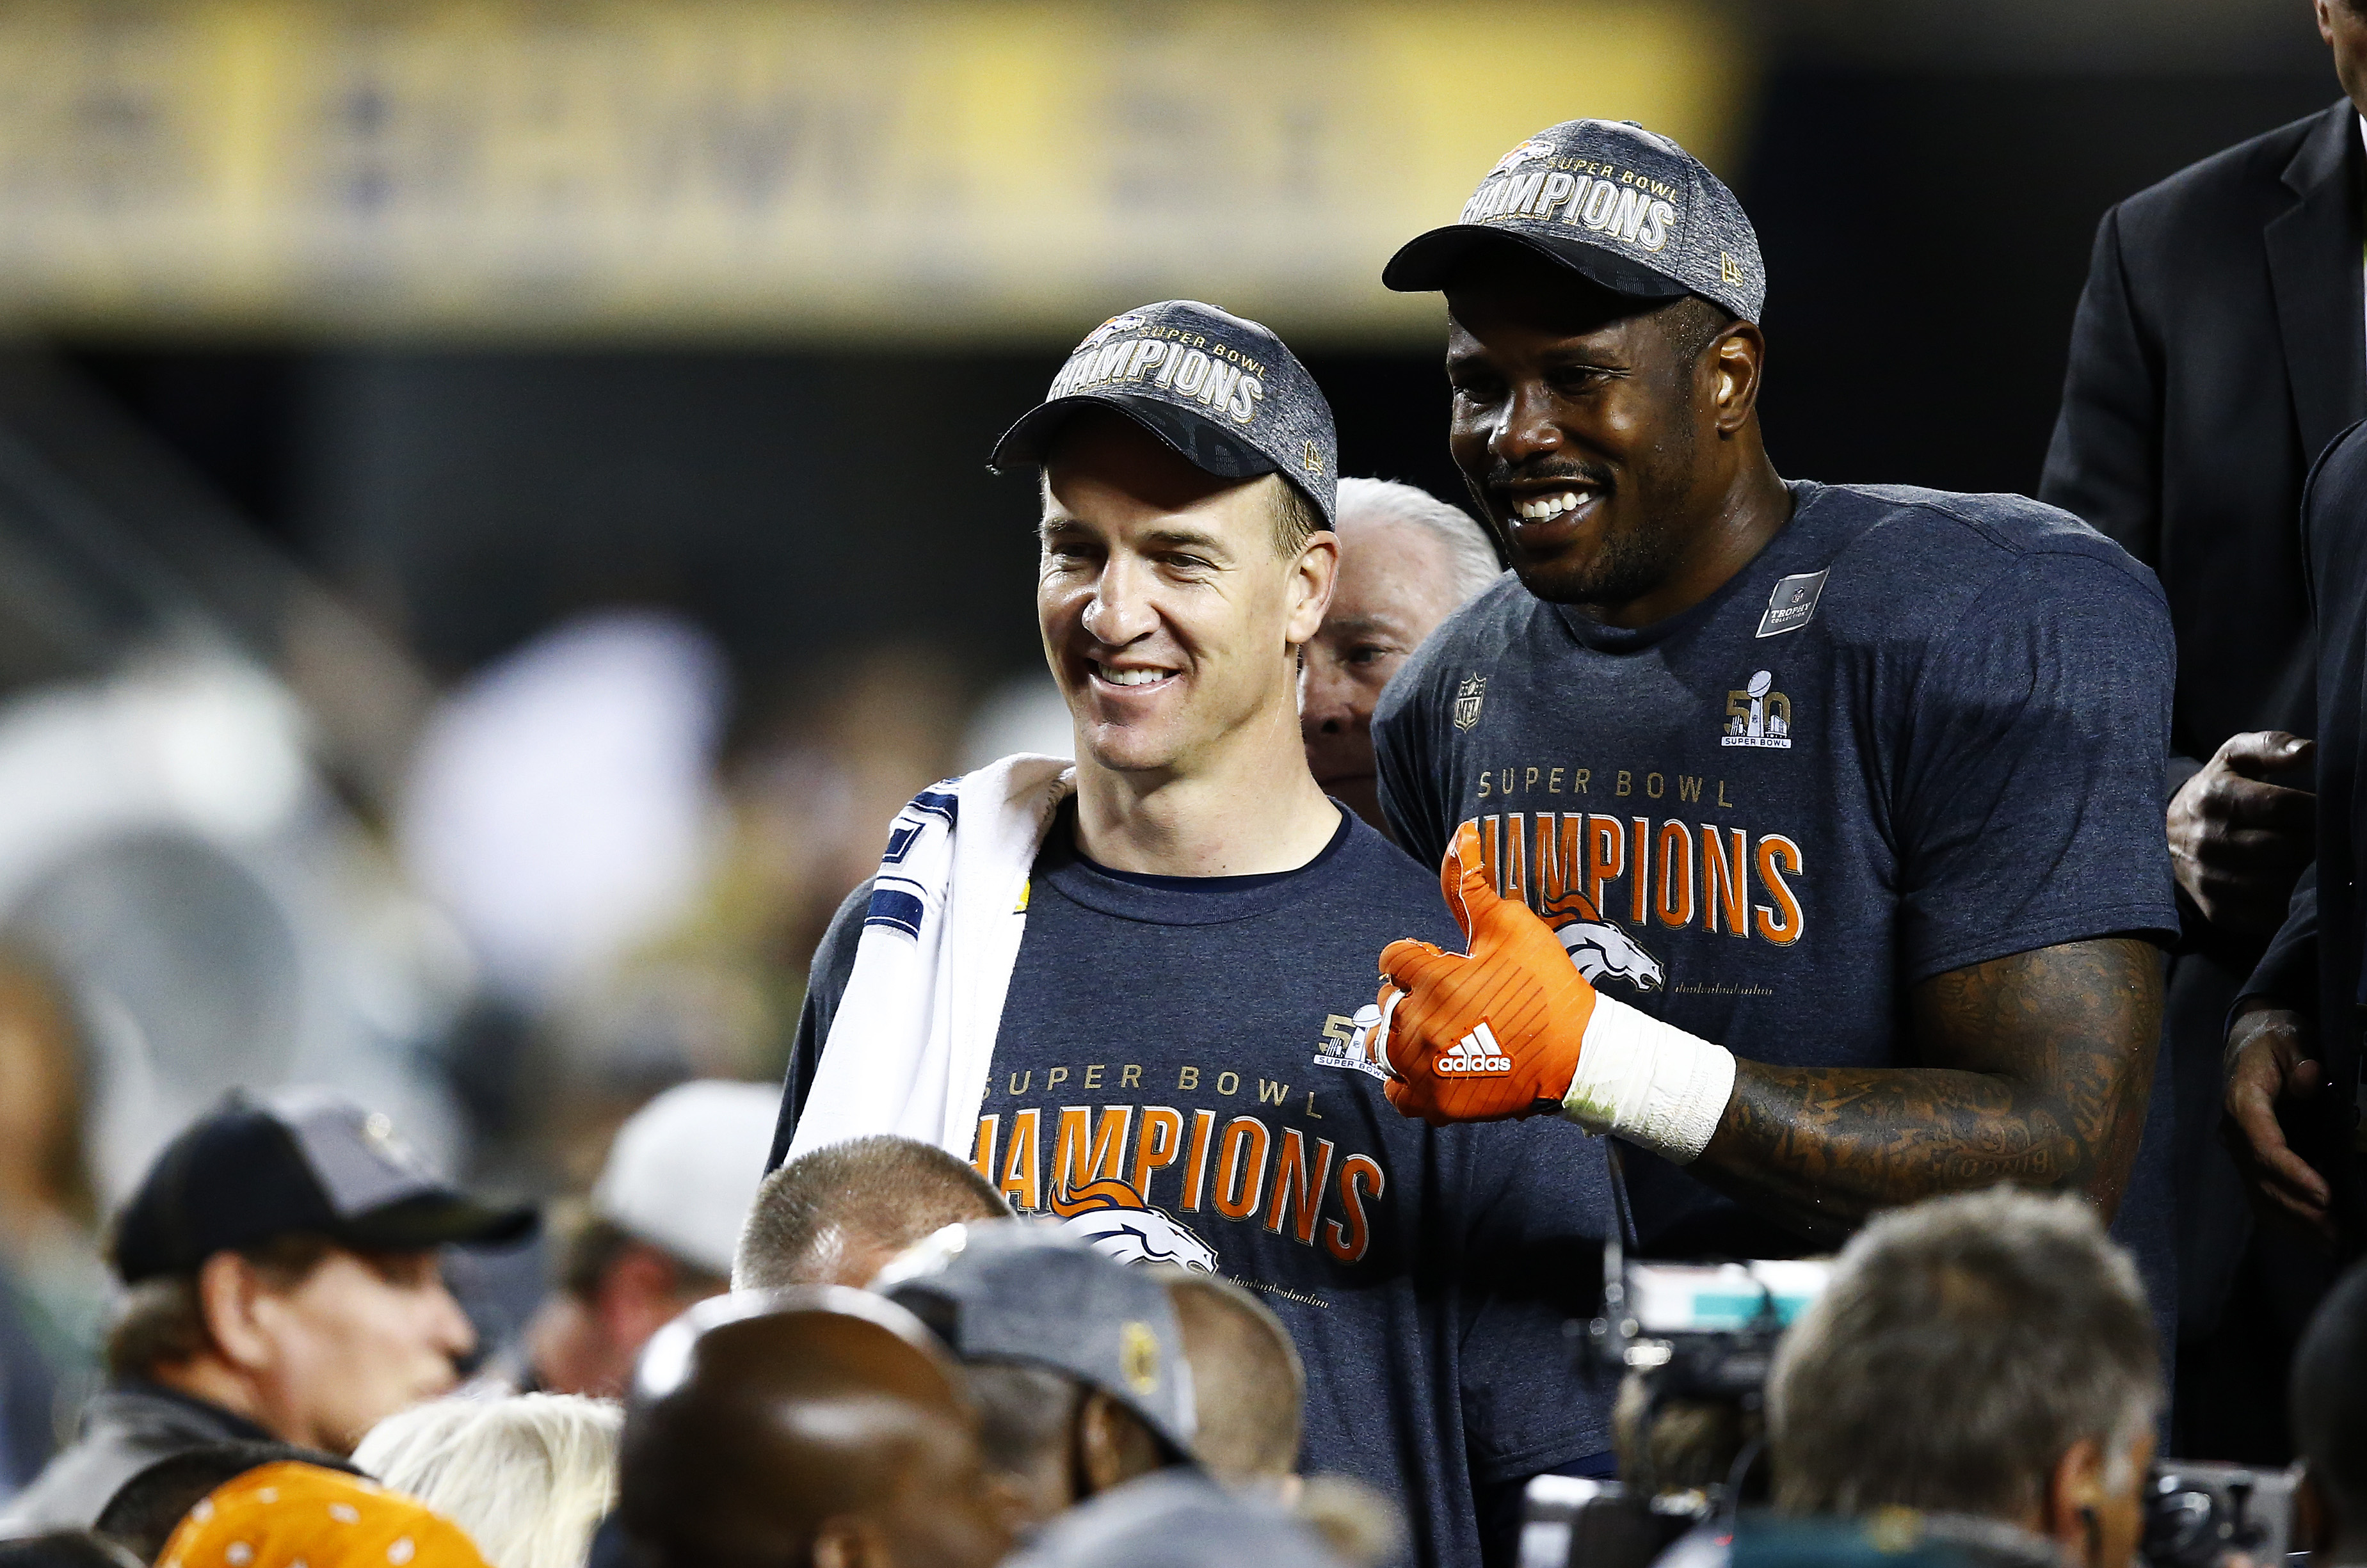 Peyton Manning #18 and Von Miller #58 of the Denver Broncos celebrate after defeating the Carolina Panthers during Super Bowl 50 at Levi's Stadium on February 7, 2016 in Santa Clara, California. The Broncos defeated the Panthers 24-10. (Photo by Al Bello/Getty Images)